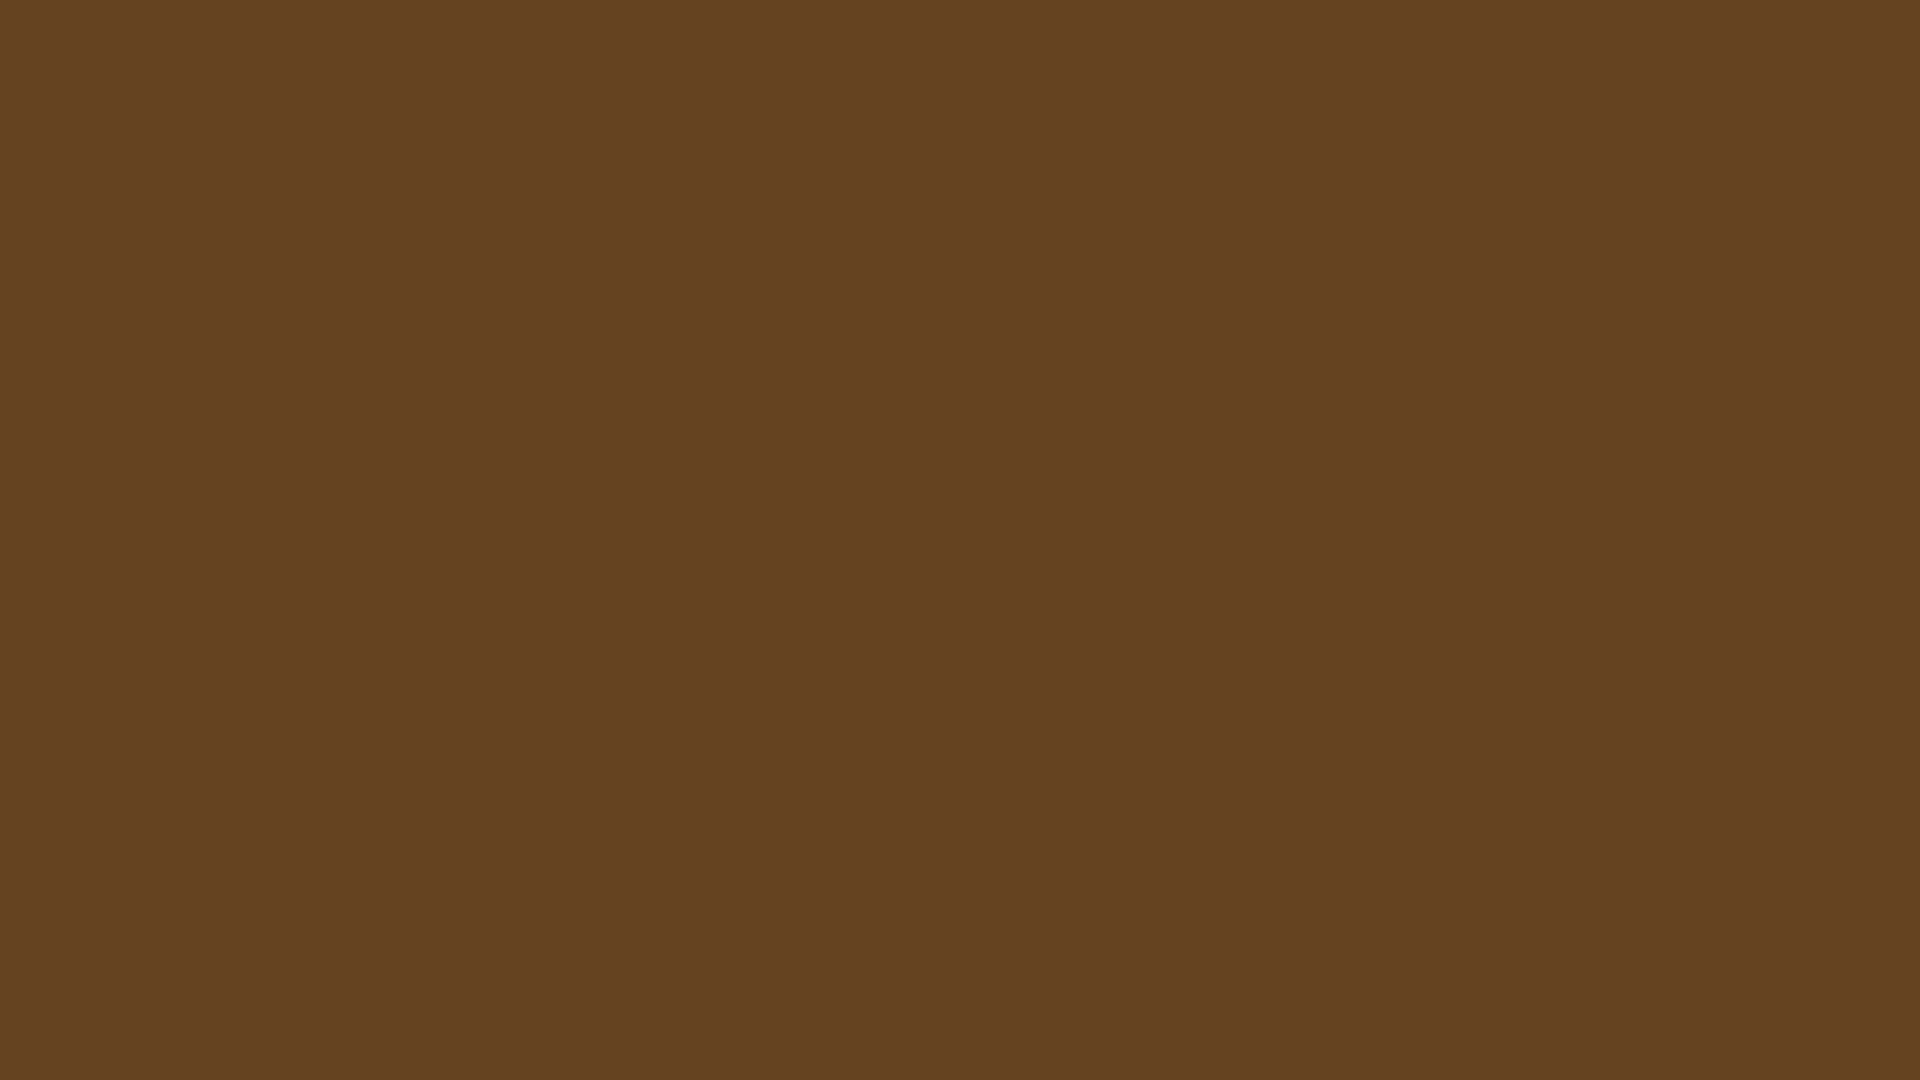 1920x1080 Otter Brown Solid Color Background 1920x1080